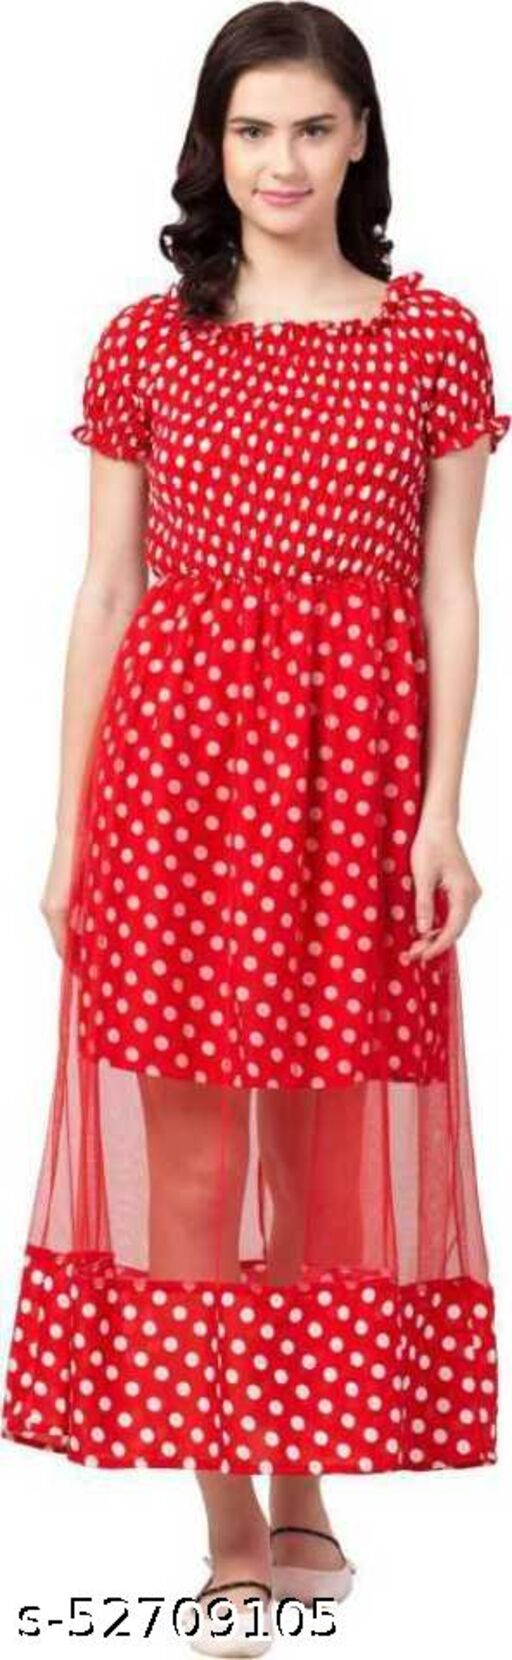 Alexa India Women Stylish & Trendy Fit and Flare Red Dress